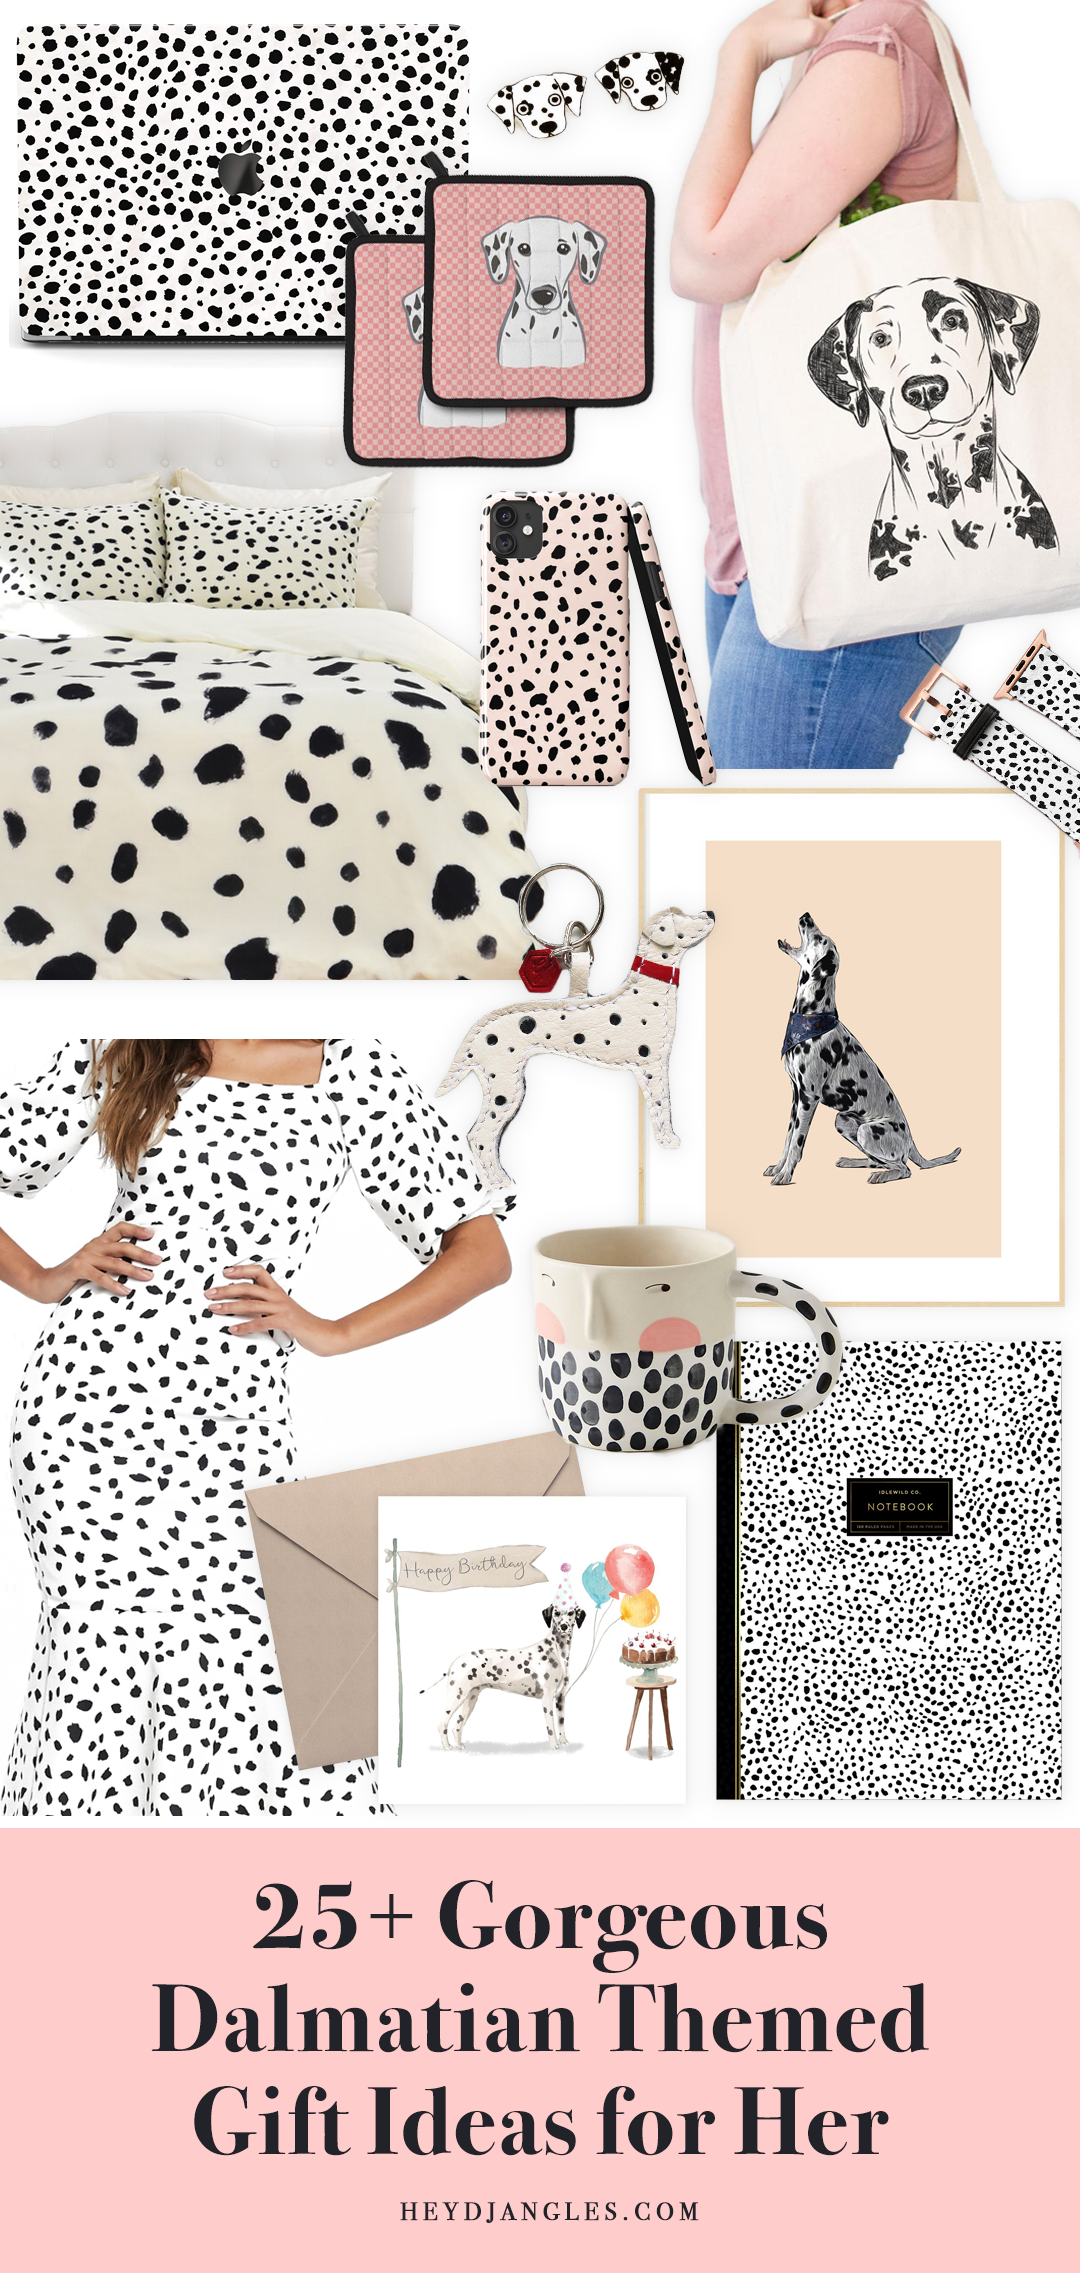 25+ Gorgeous Dalmatian Gifts for Her - Dalmatian gift ideas and accessories.